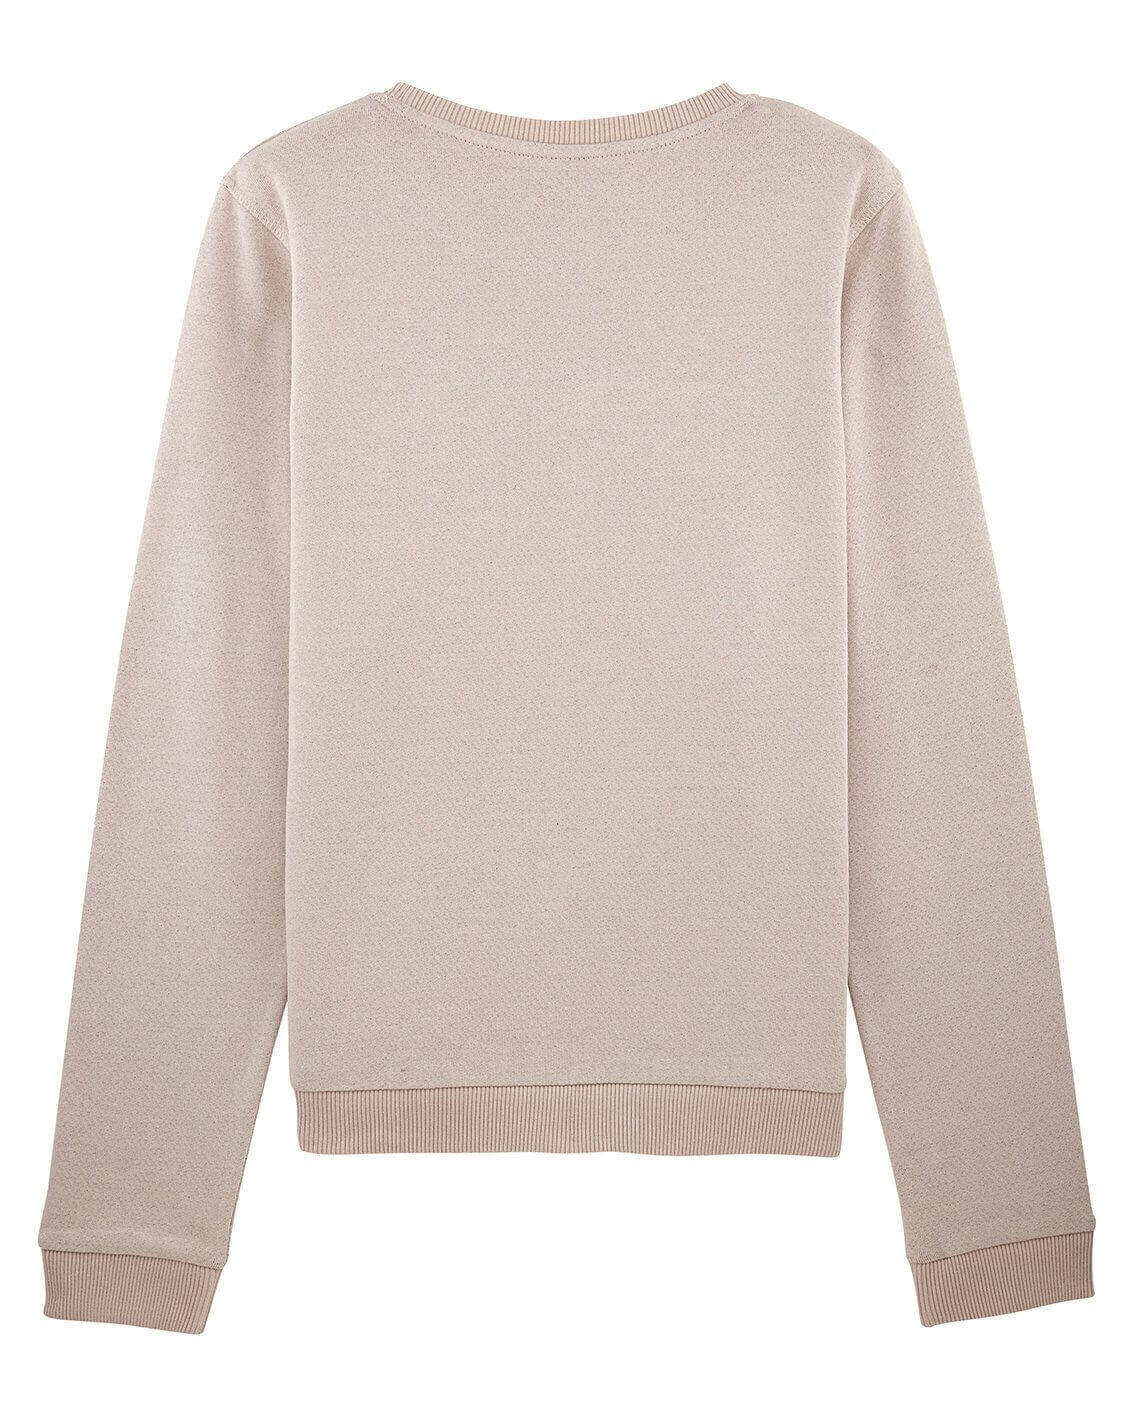 Womens Boxy Sweatshirt : Be On The Right Side Of History